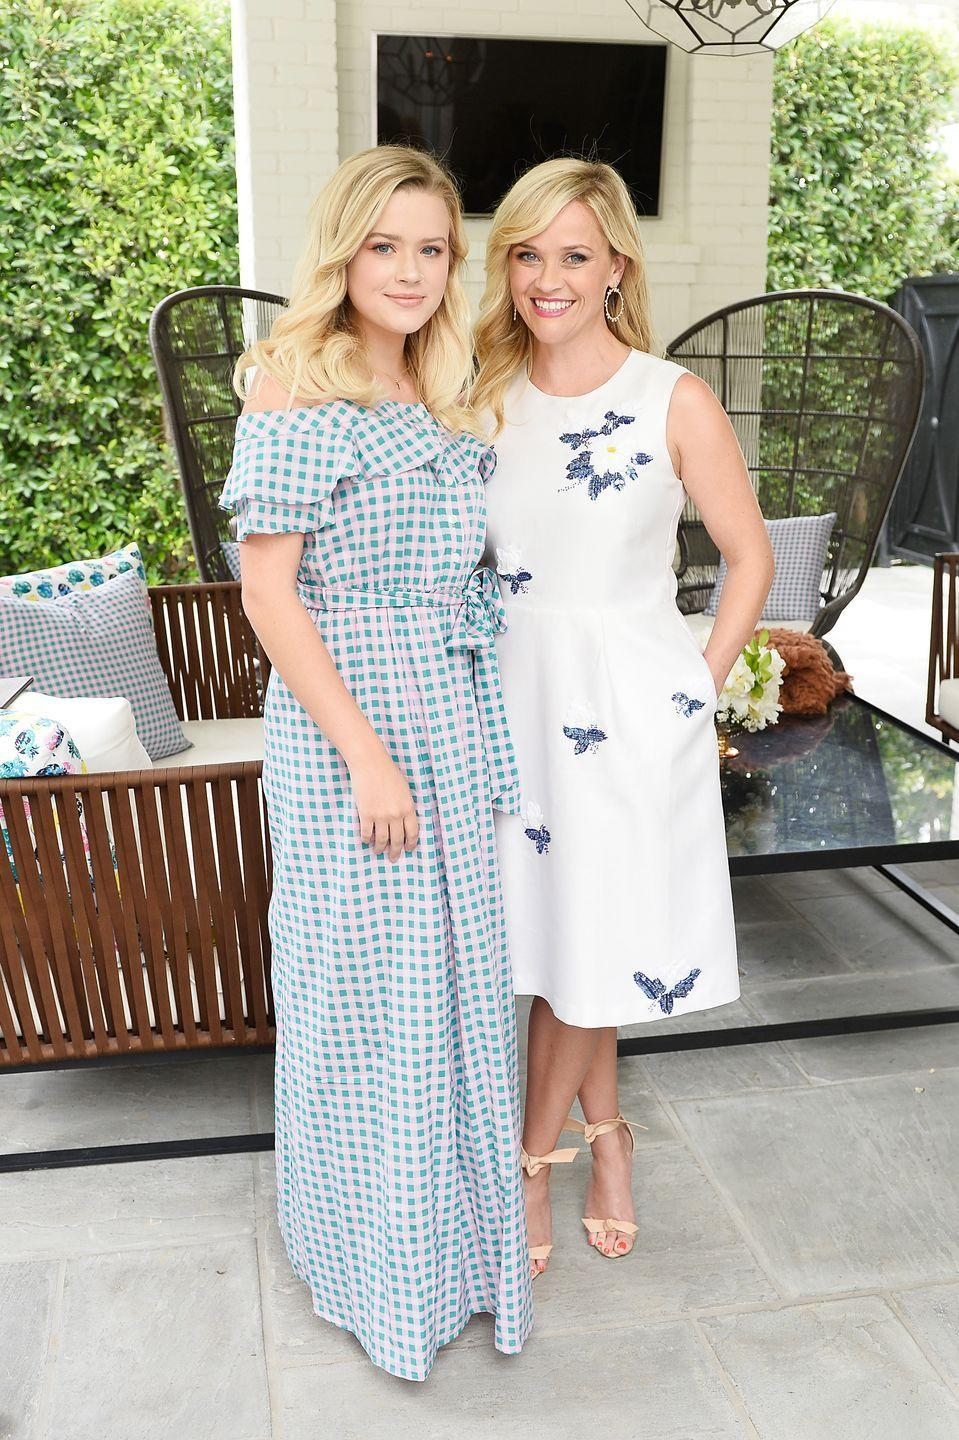 """<p>It's not every day you have to do a double take at a mother and daughter but when it comes to the <a href=""""https://www.elle.com/uk/life-and-culture/culture/news/g32734/reese-witherspoon-daughter-ava-phillippe-twins-identical/"""" rel=""""nofollow noopener"""" target=""""_blank"""" data-ylk=""""slk:A Wrinkle In Time star and her daughter"""" class=""""link rapid-noclick-resp"""">A Wrinkle In Time star and her daughter</a>, it's more than acceptable behaviour. Teenager Ava is often seen posing alongside her famous mother on the red carpet and enjoying mother-daughter dates together, which the Legally Blonde actress loves to share photos of on Instagram. </p>"""